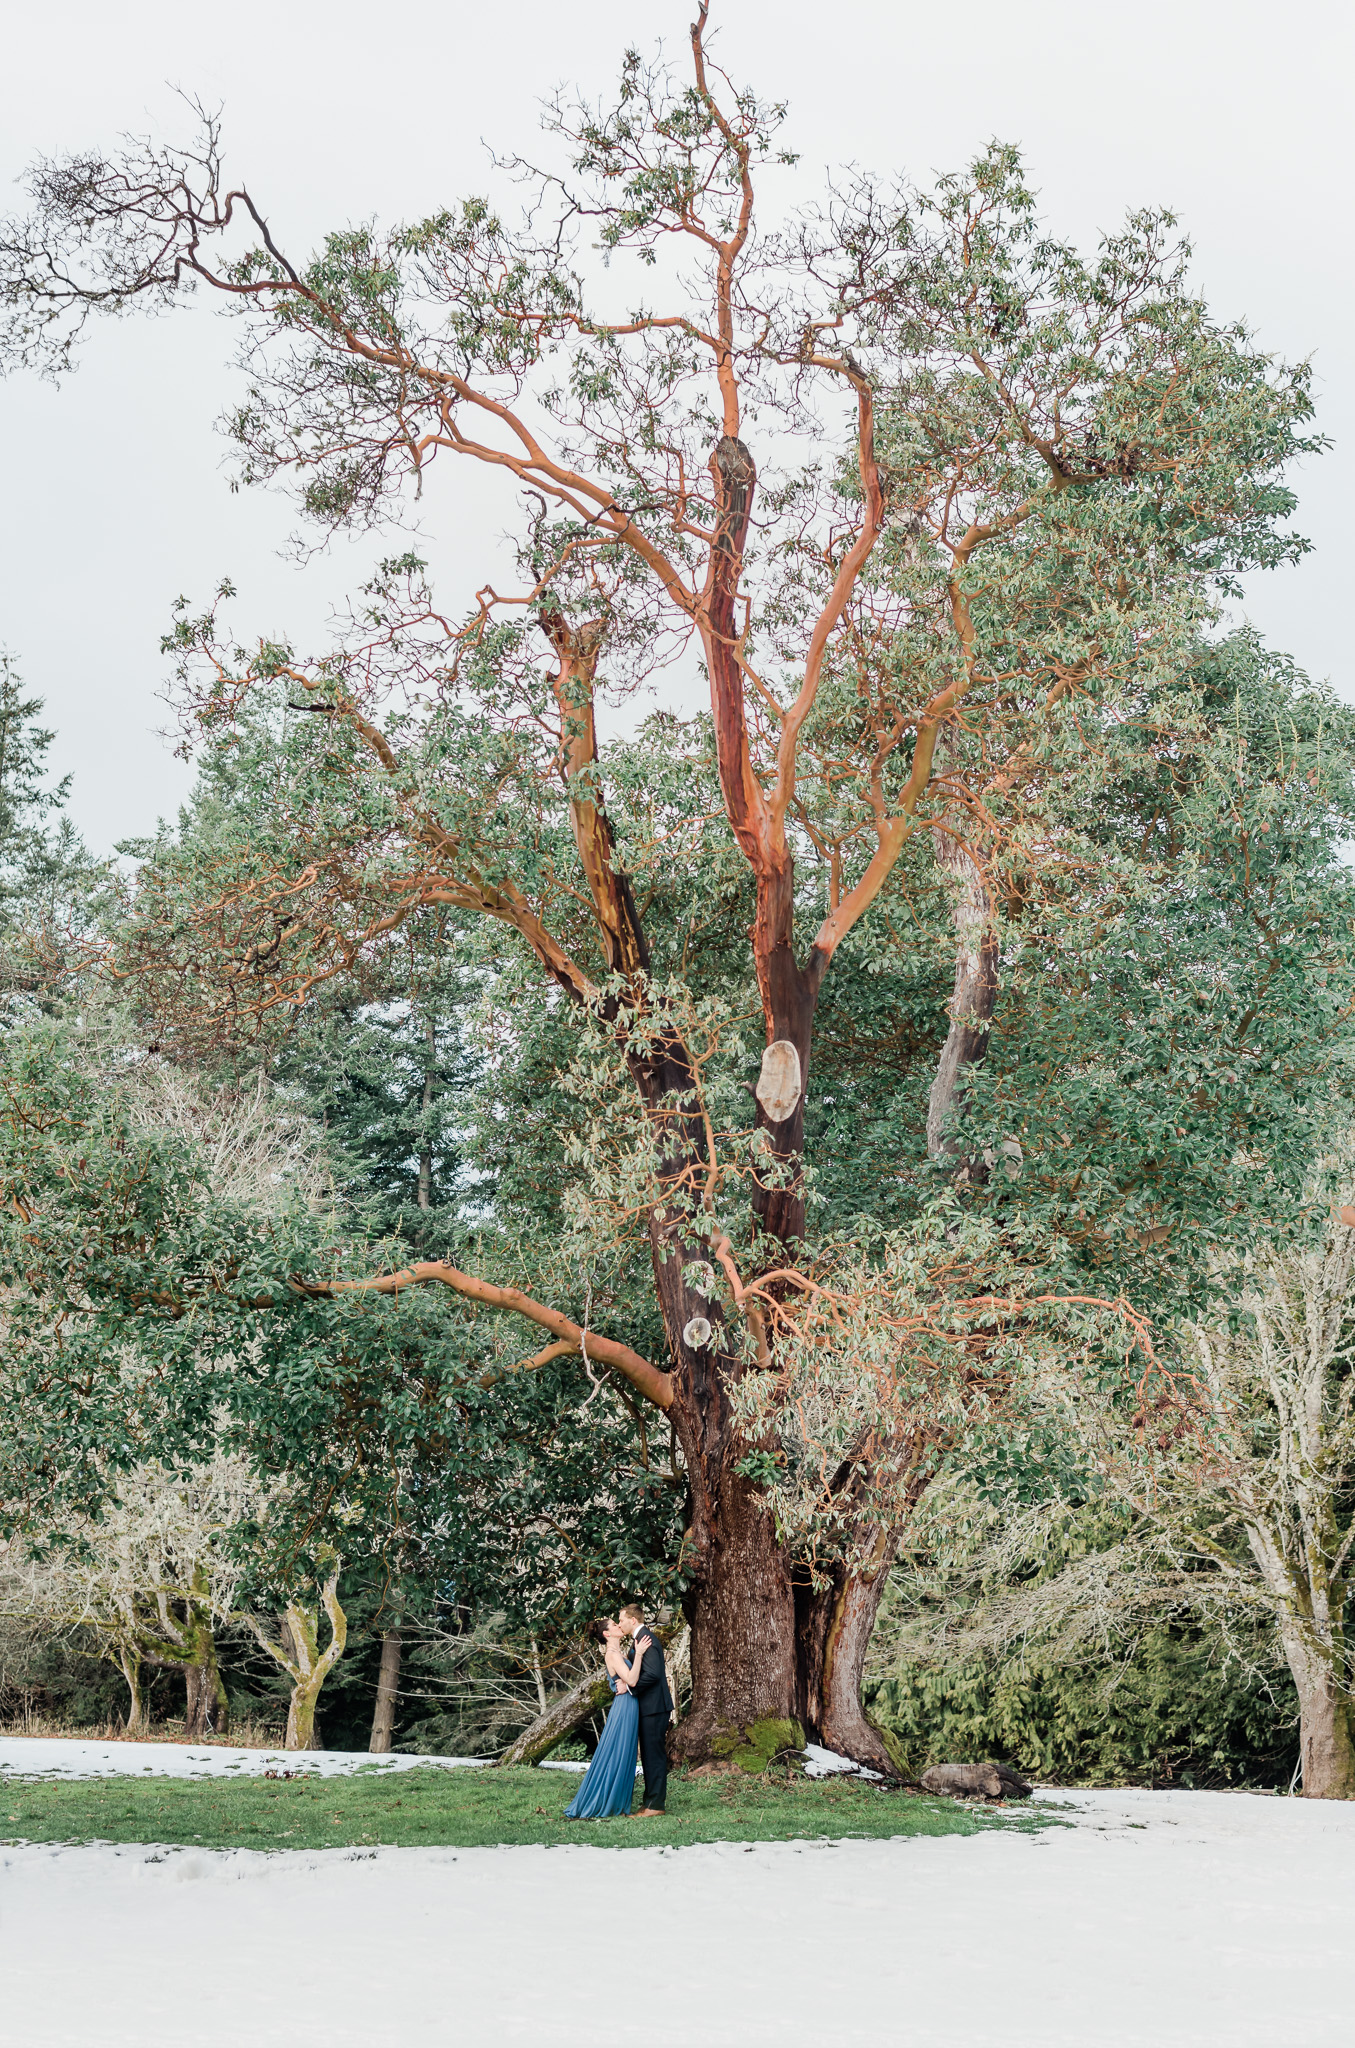 Victoria BC Engagement and Proposal Photographer - ItkasanImages